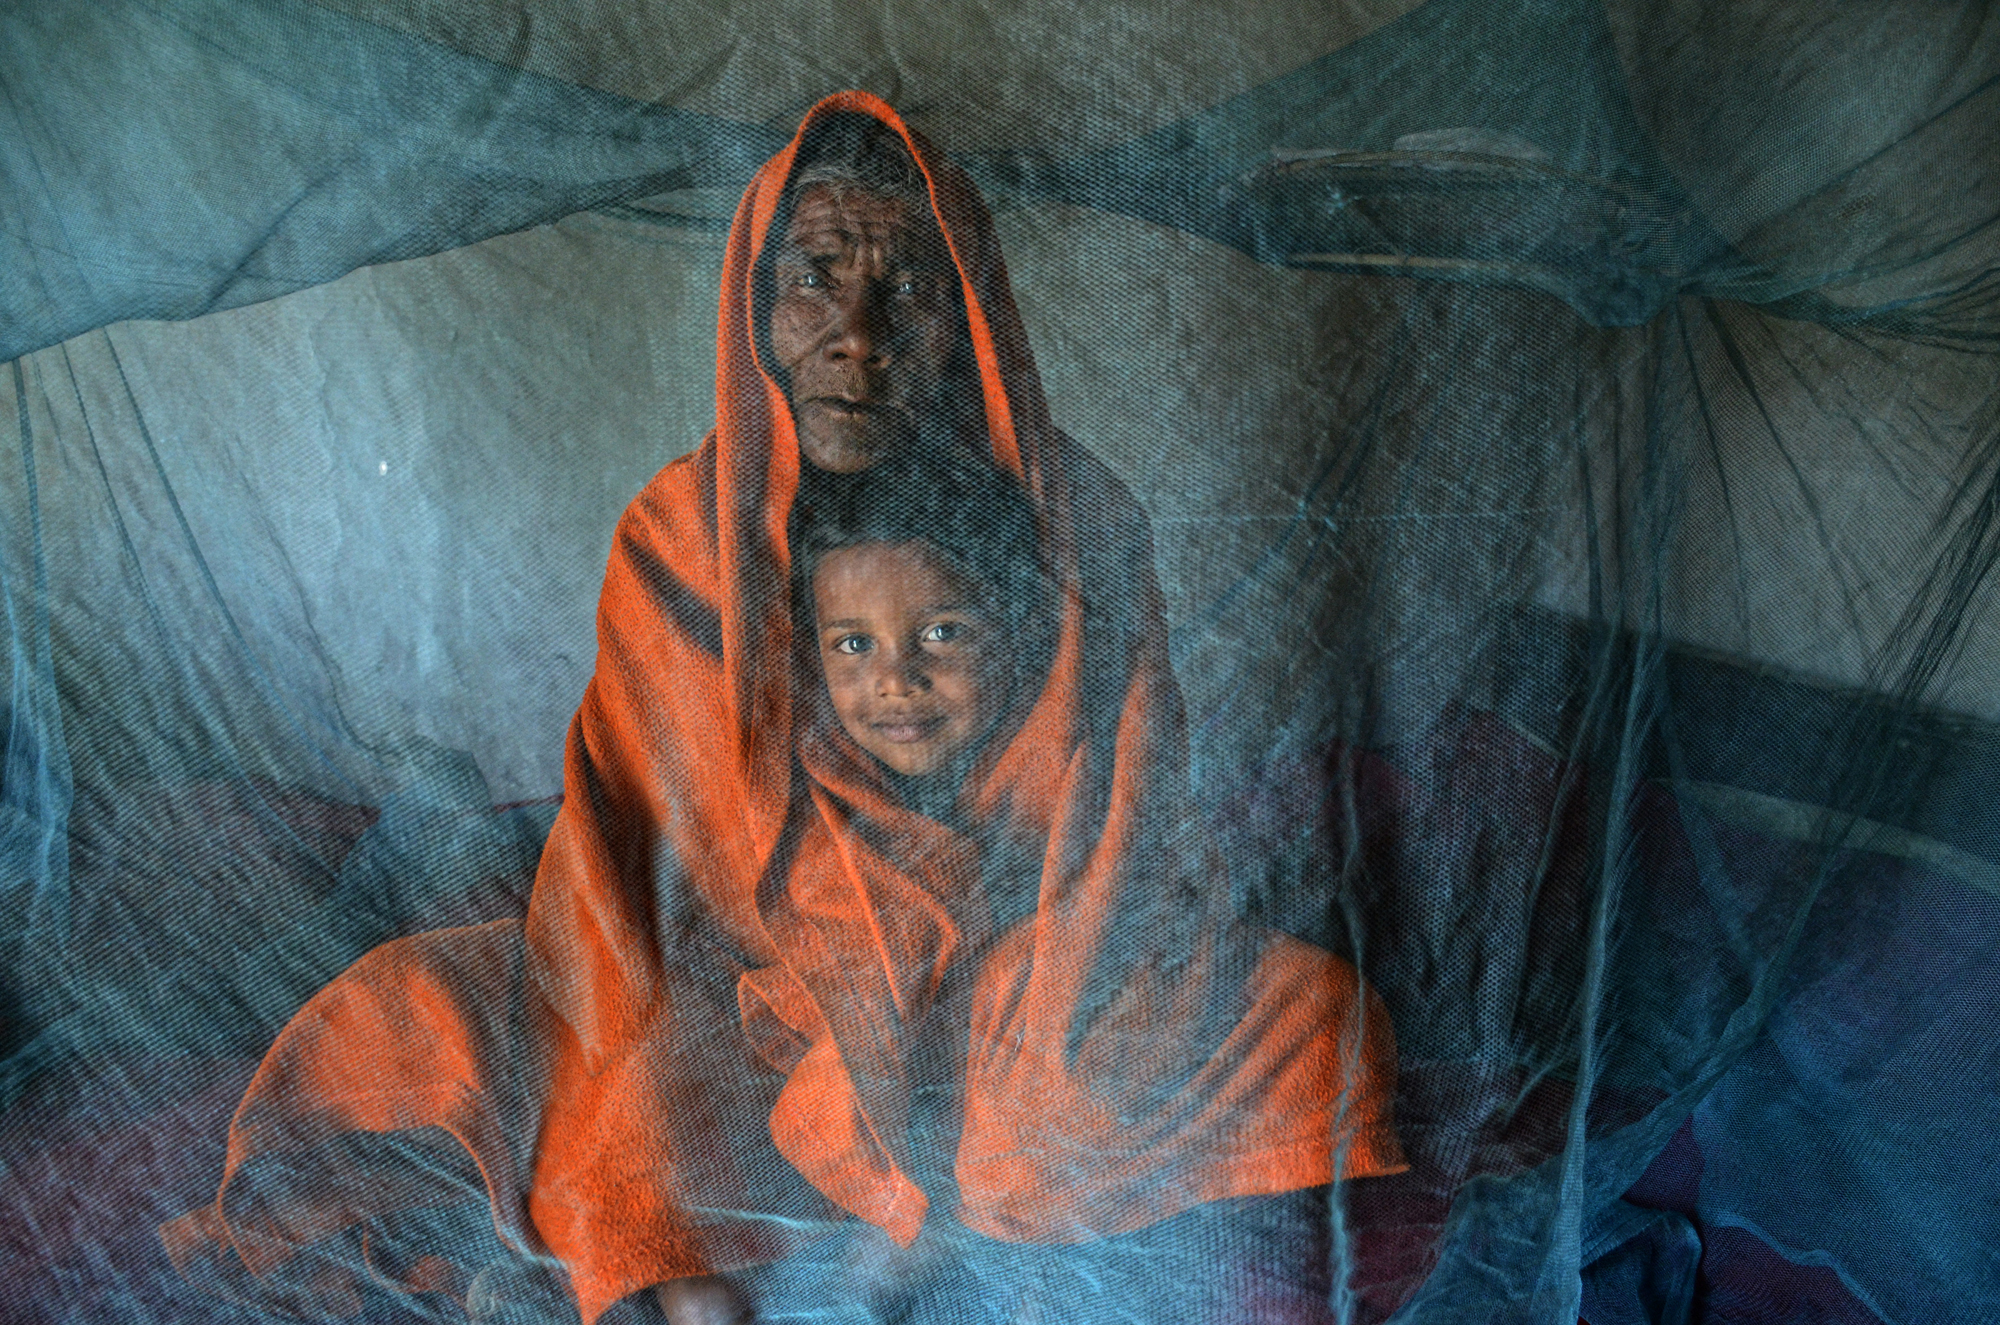 https://www smithsonianmag com/photocontest/detail/people/rising